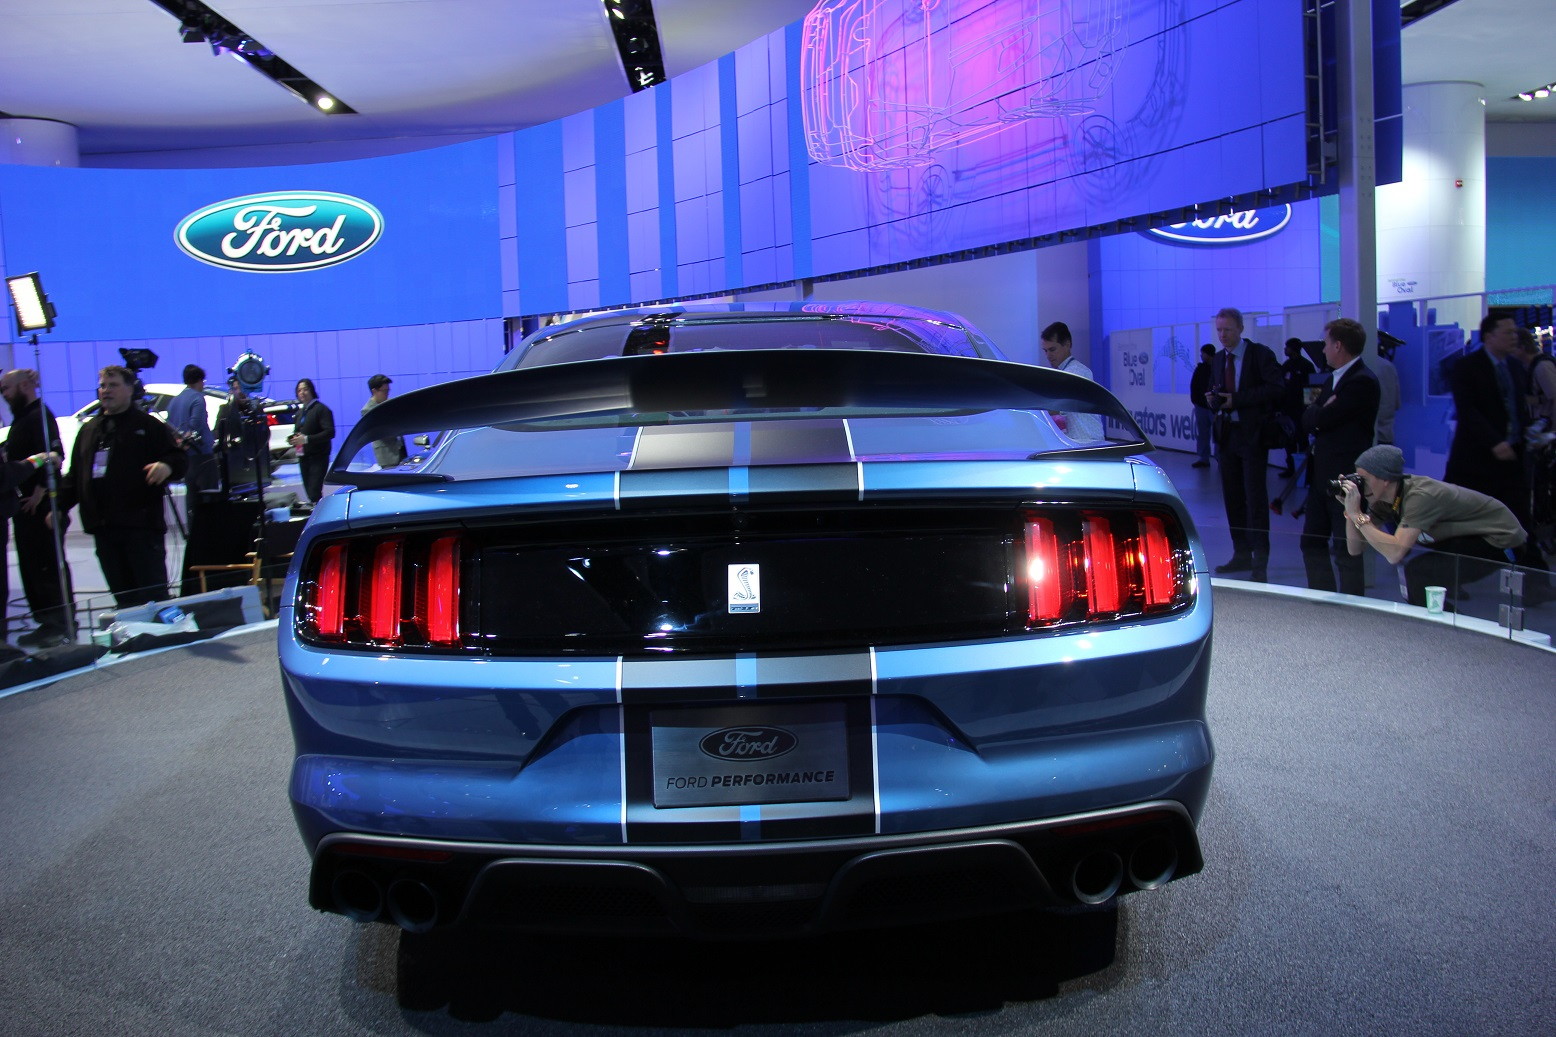 2016 Ford Mustang Shelby GT350R Rear End Design